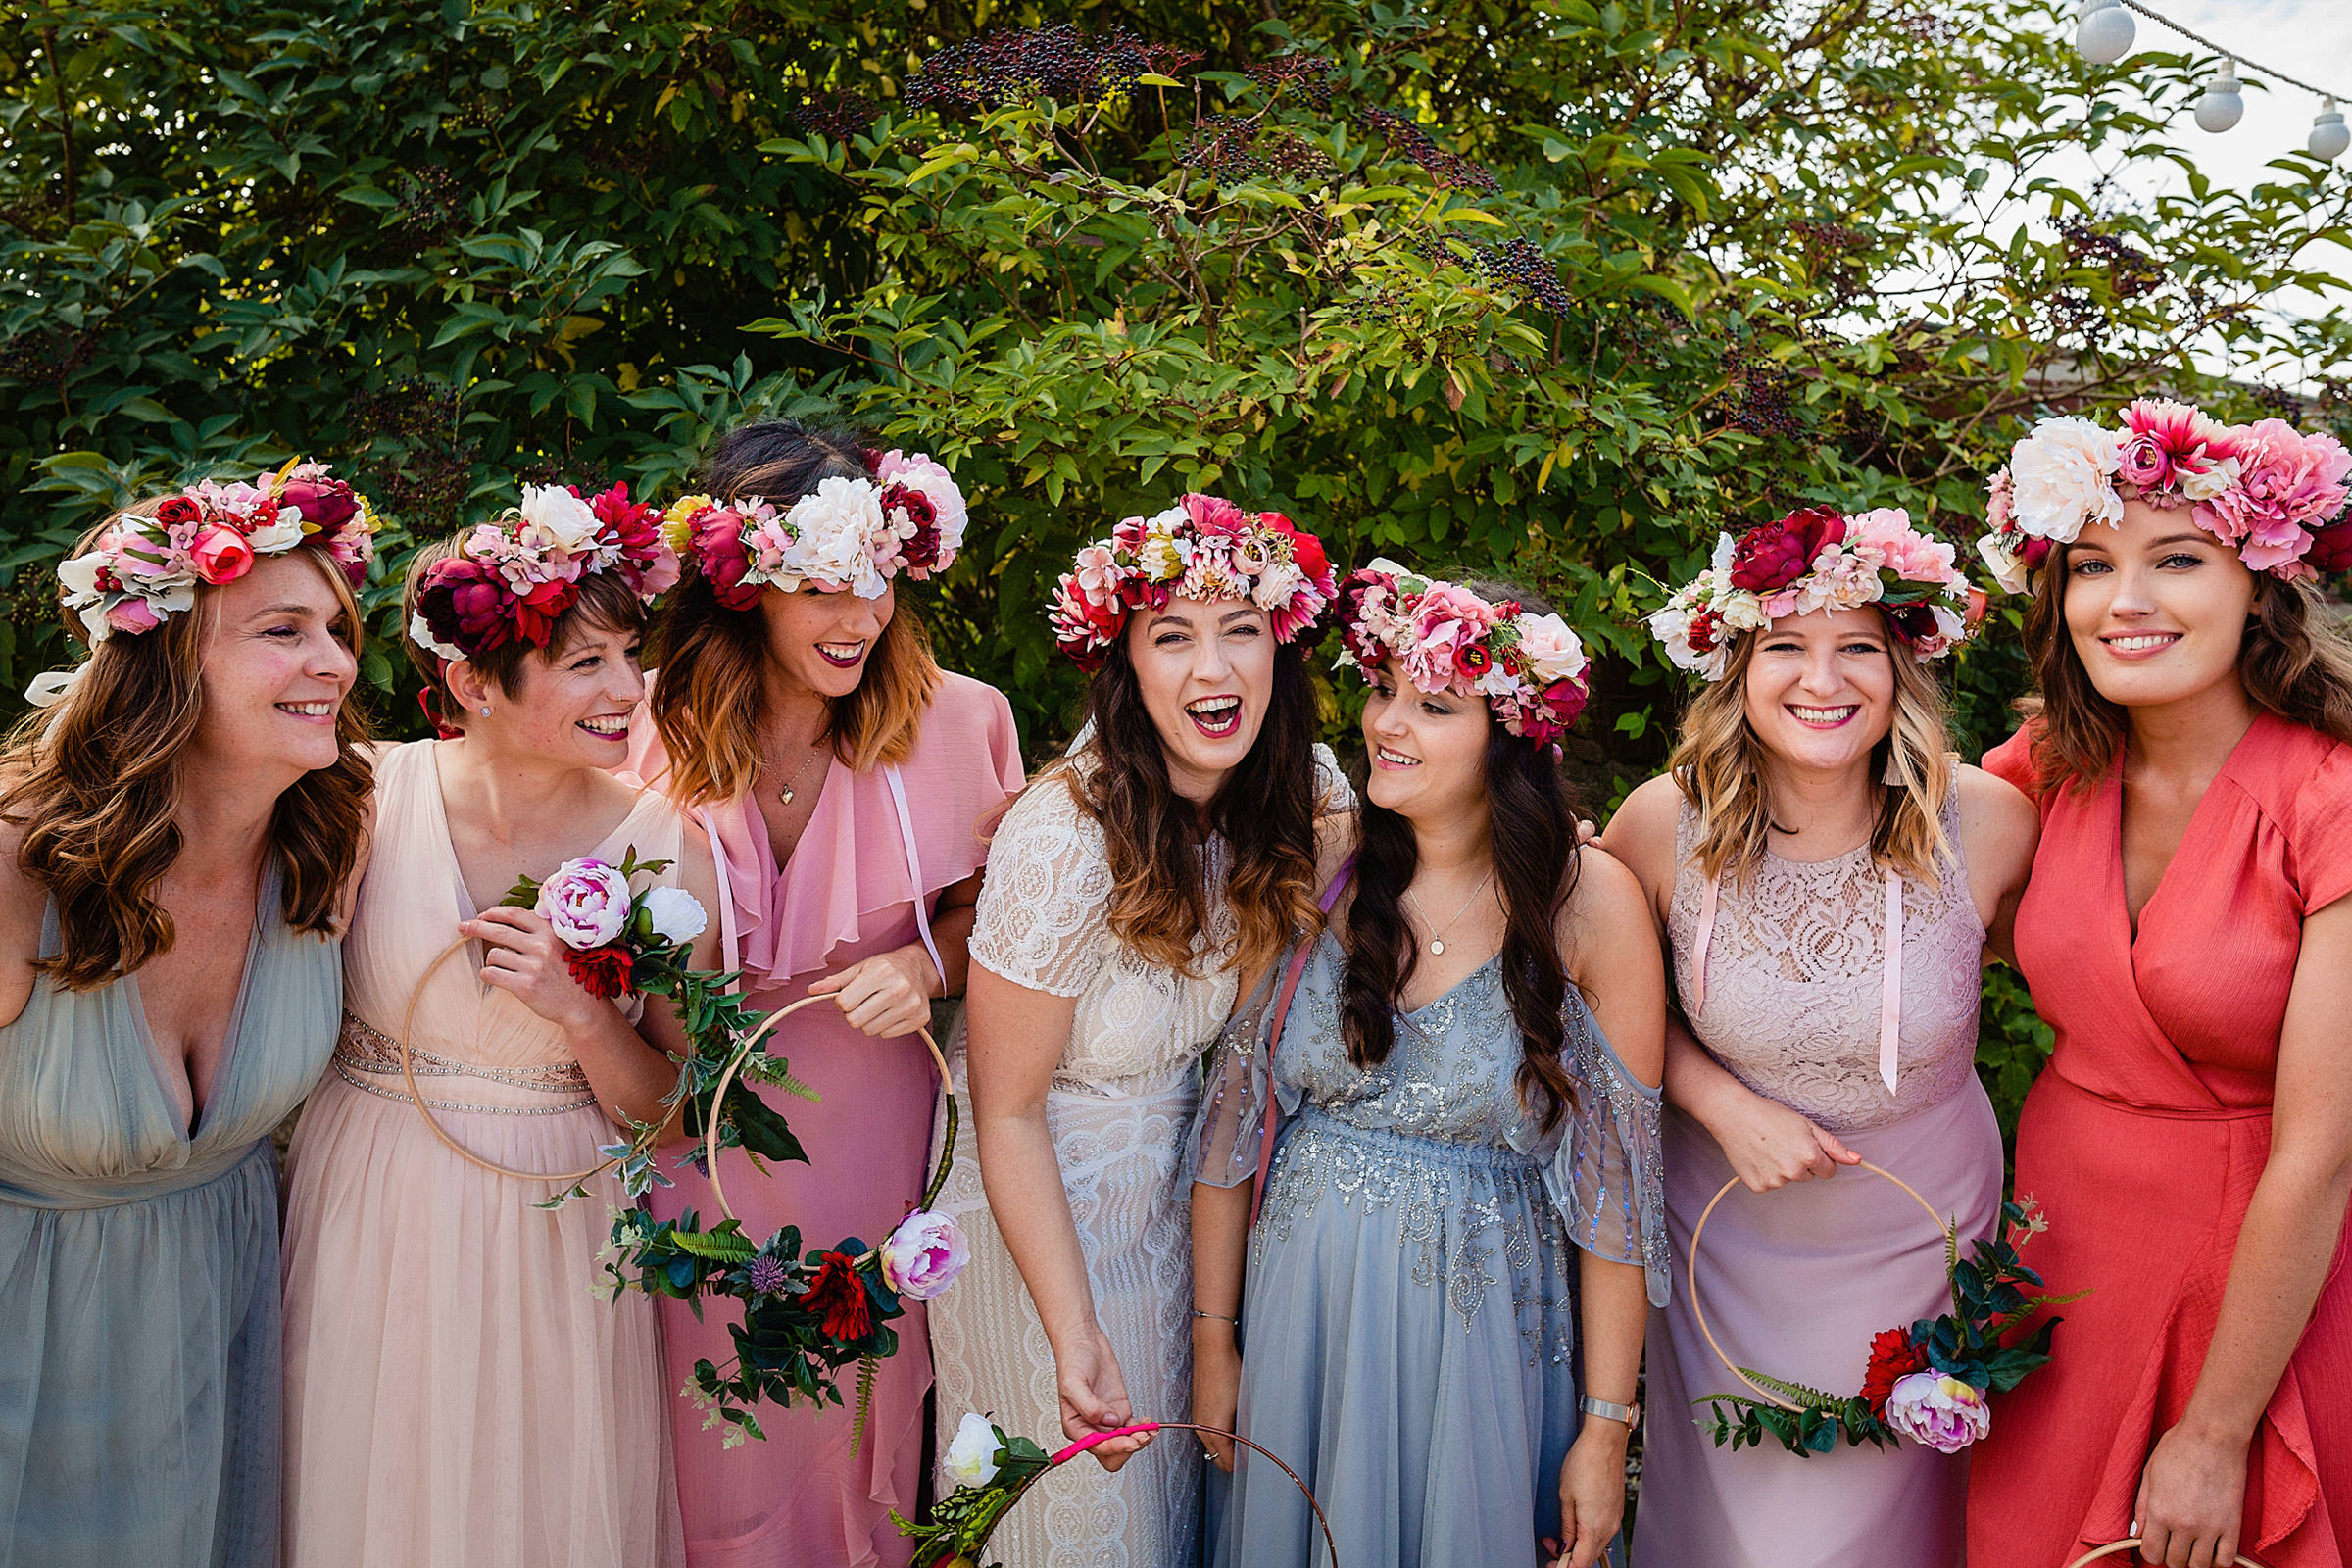 Bride and bridesmaids wearing floral crowns of pink and white peonies and roses photographed by Emma and Rich - UK photographers